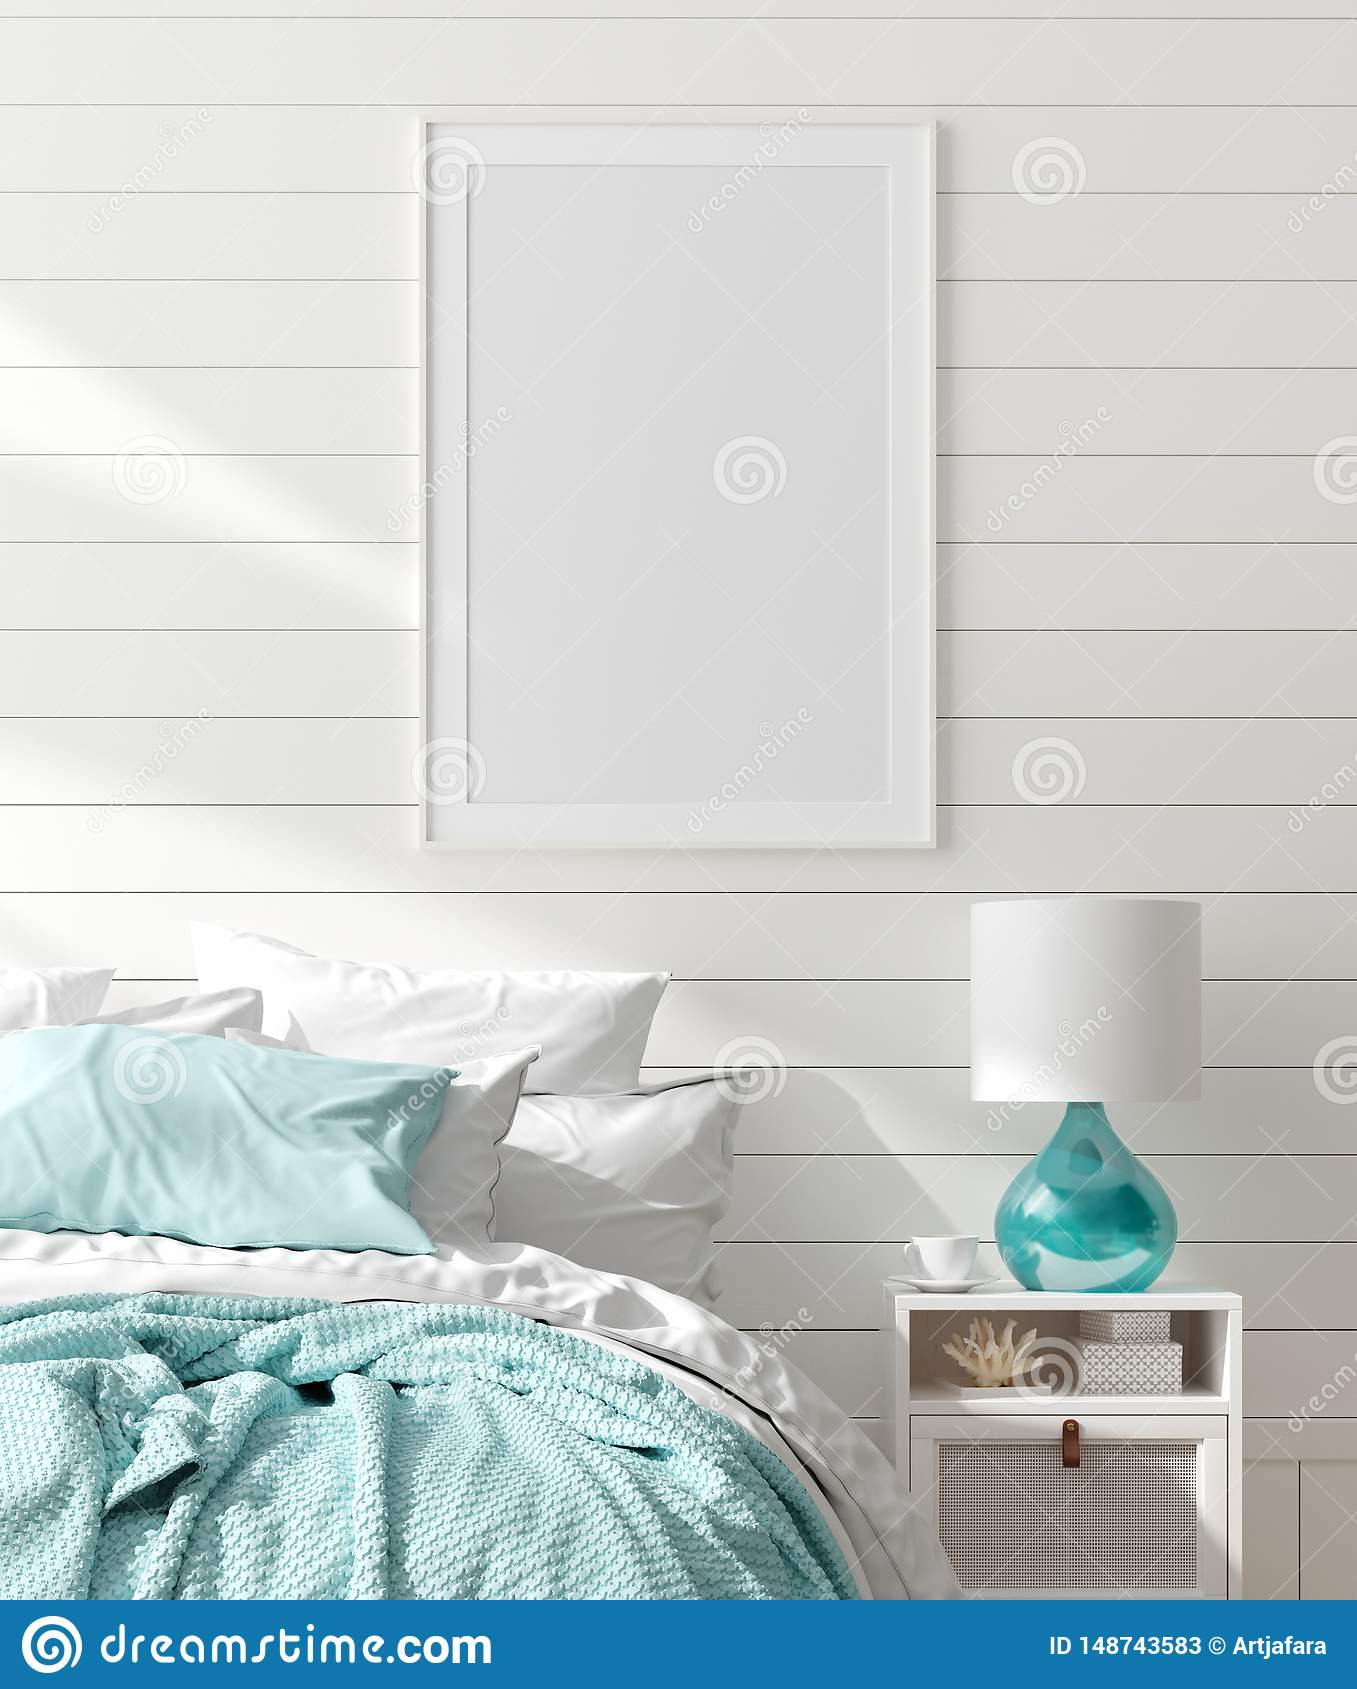 Mock up frame in bedroom interior, marine room with sea decor and furniture, Coastal style